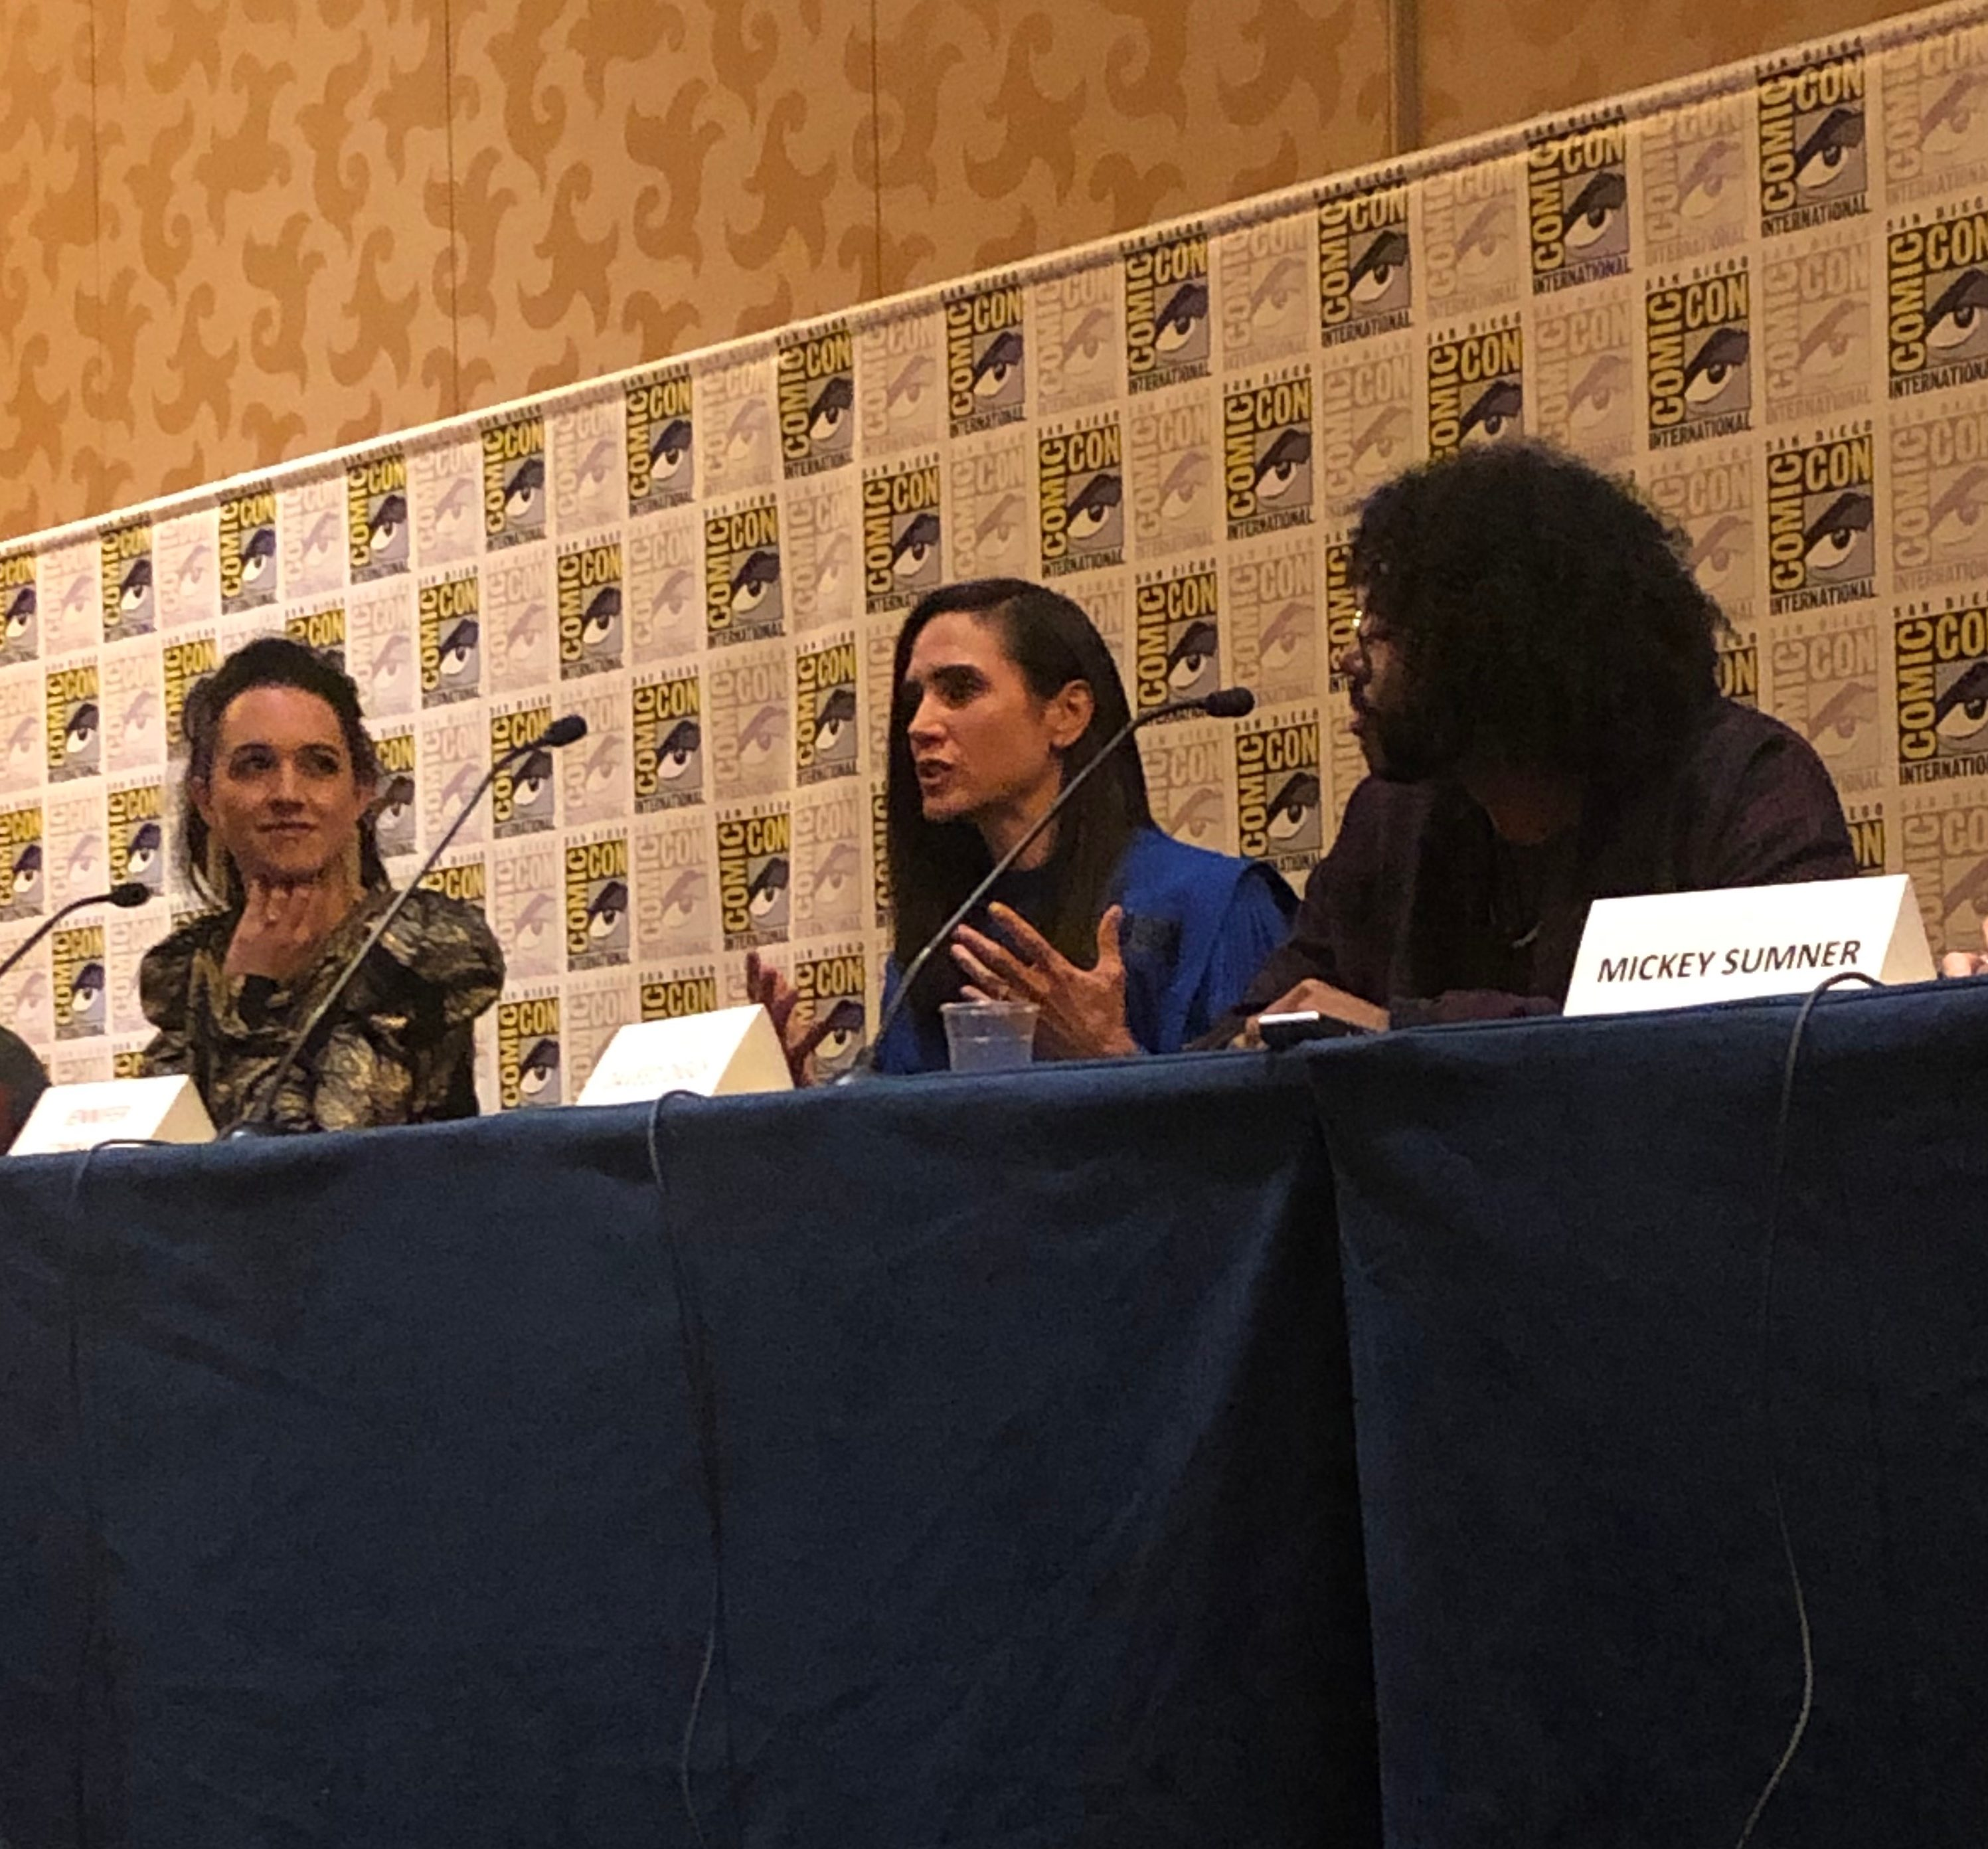 'Snowpiercer' Releases Trailer and Connelly Gives Insight Into Her Character During Comic Con Panel and Press Conference